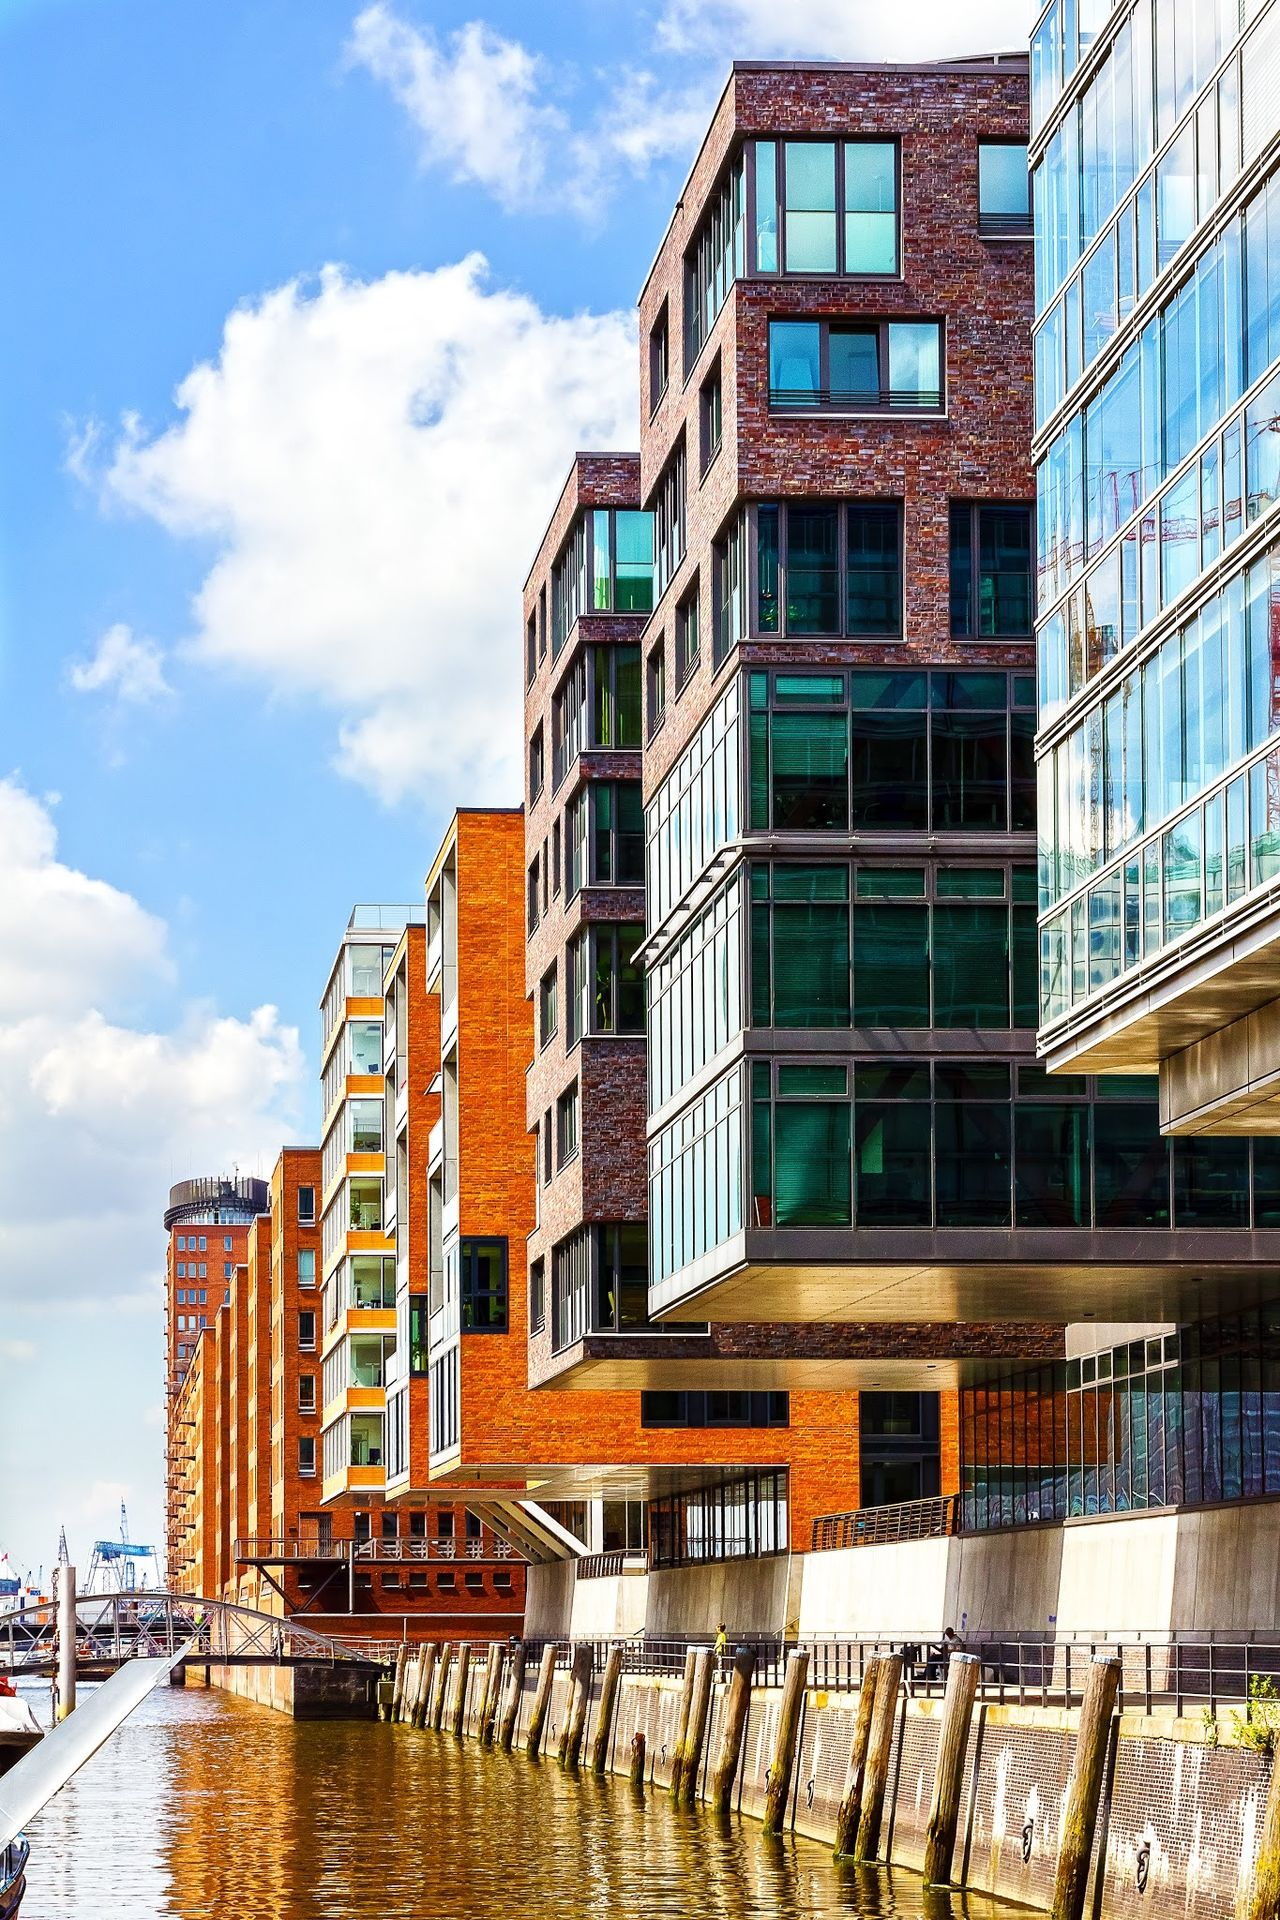 Apartment Buildings overlooking the Canal in the Warehouse district of Hamburg Germany . Urban Spring Fever Architecture Street Photography EyeEm Best Shots Canon http://www.pitcrewproductions.com The Architect - 2017 EyeEm Awards